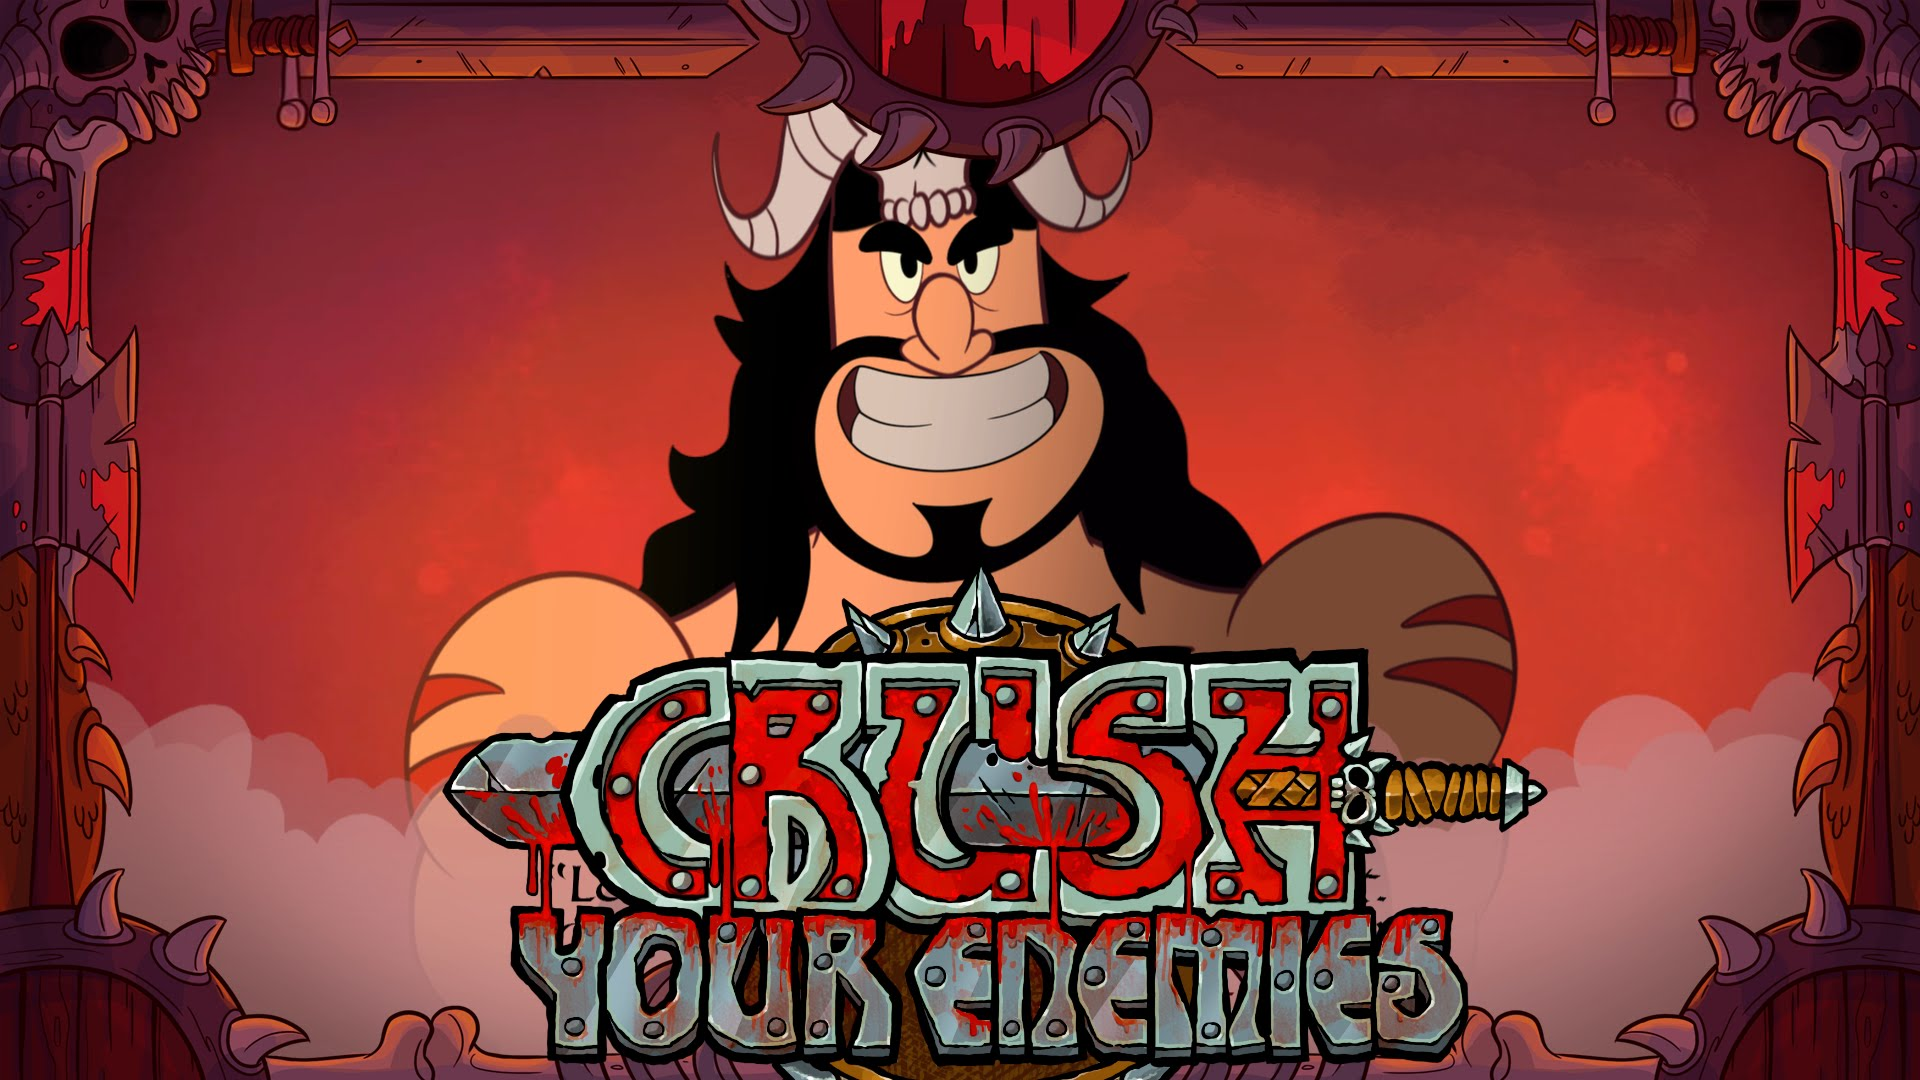 Crush Your Enemies - Google Play Store Trailer